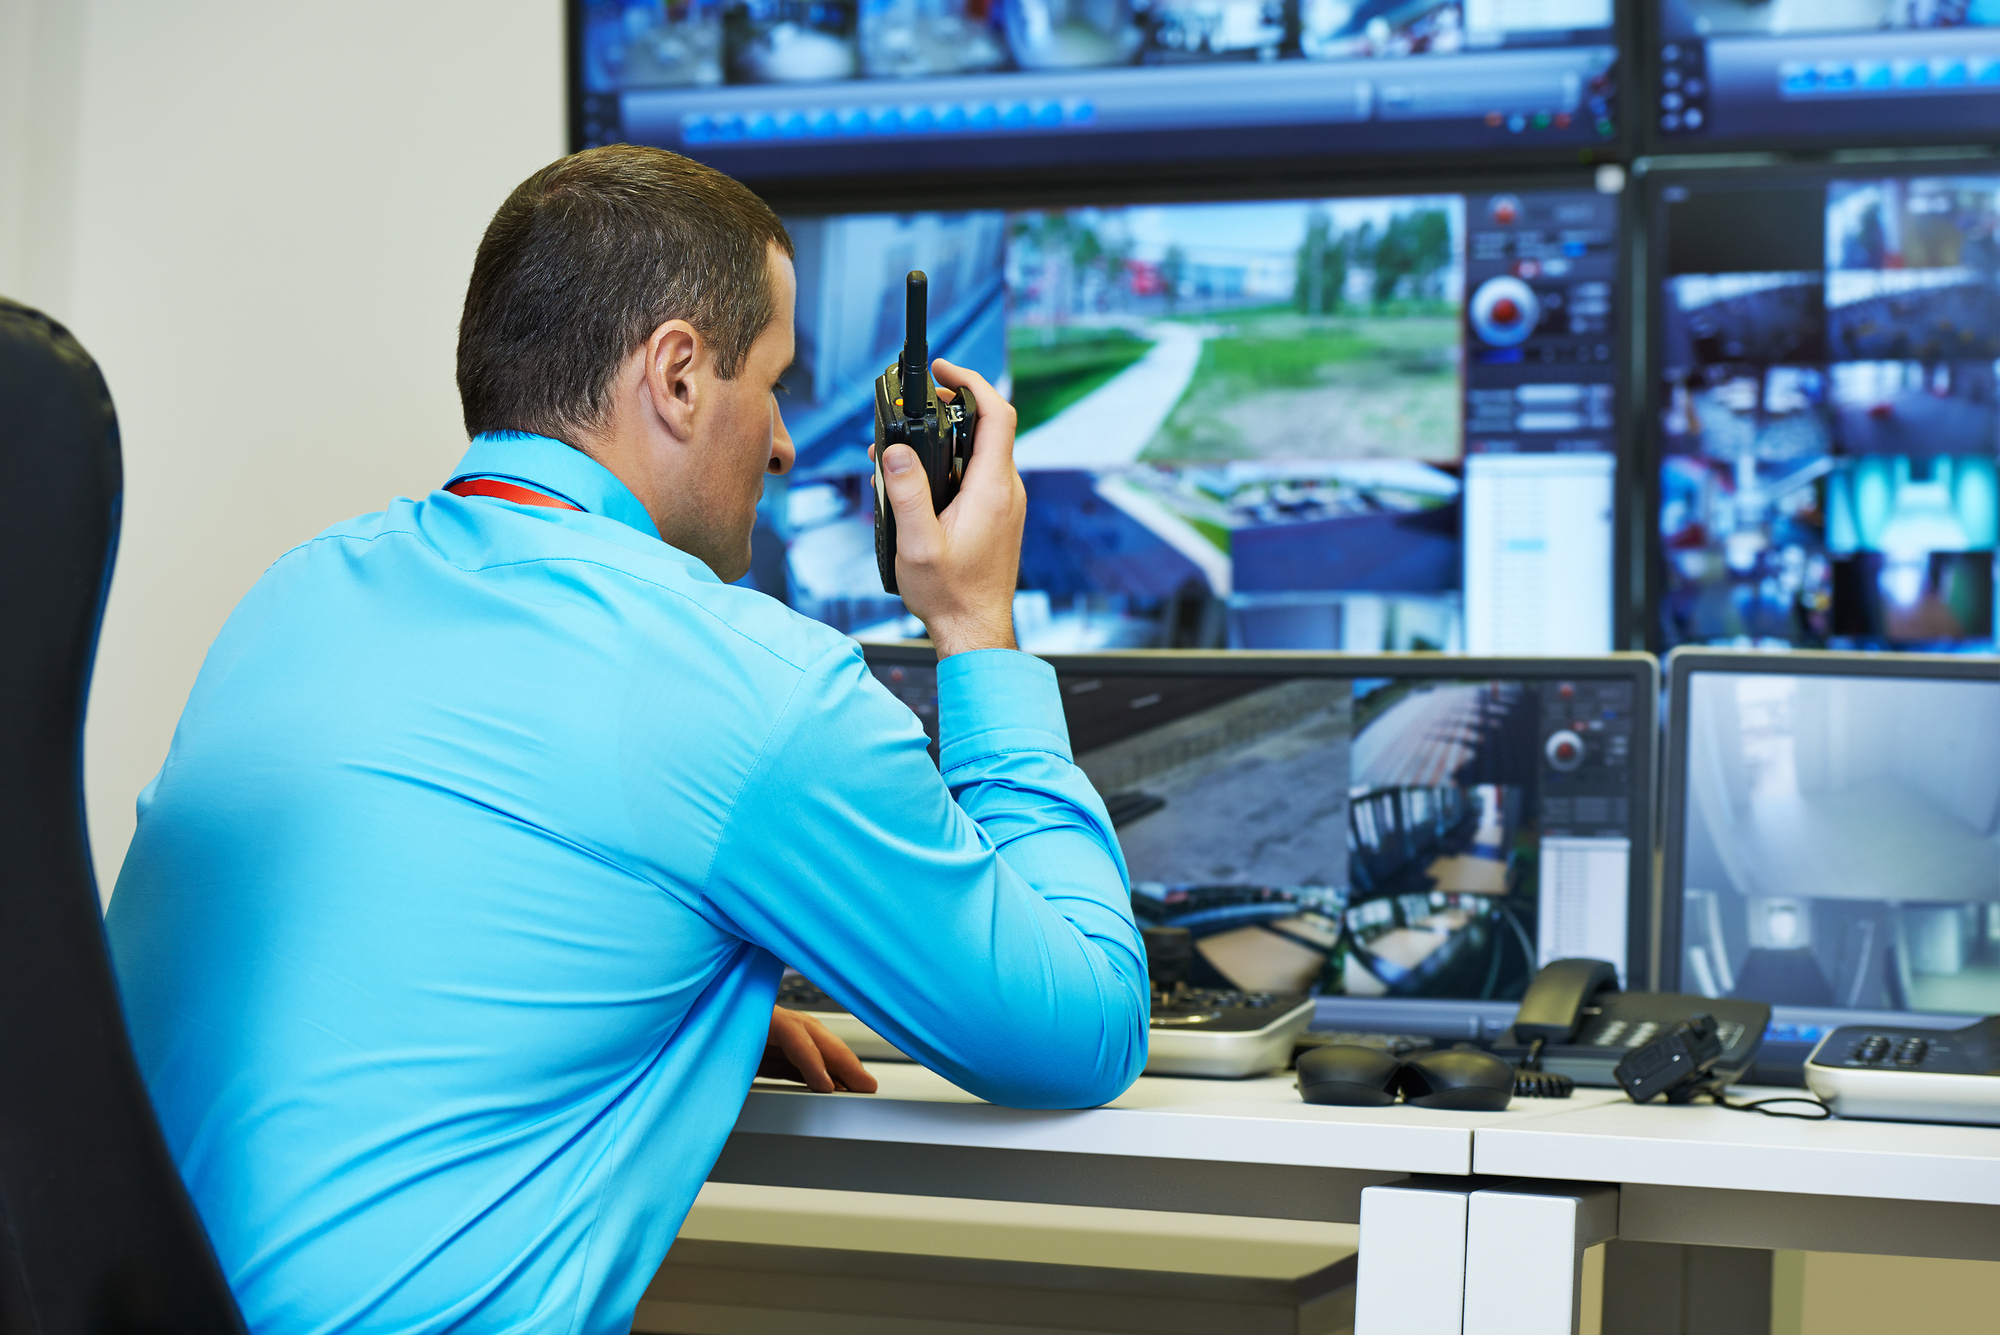 security guard watching video monitoring surveillance security s